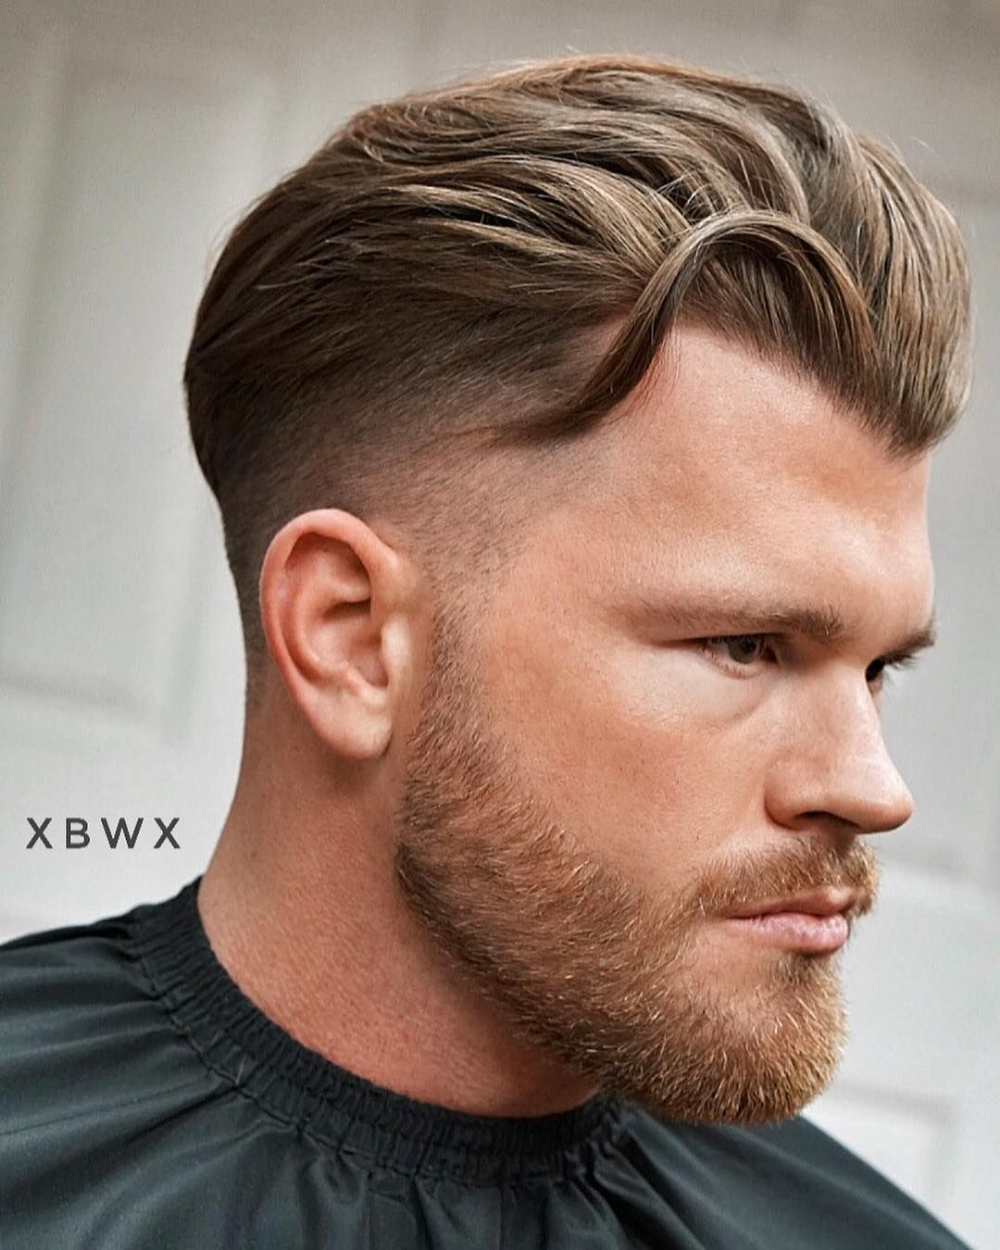 20+ Trendiest Mens Hairstyles Long For 2019 Trends #hairandbeardstyles